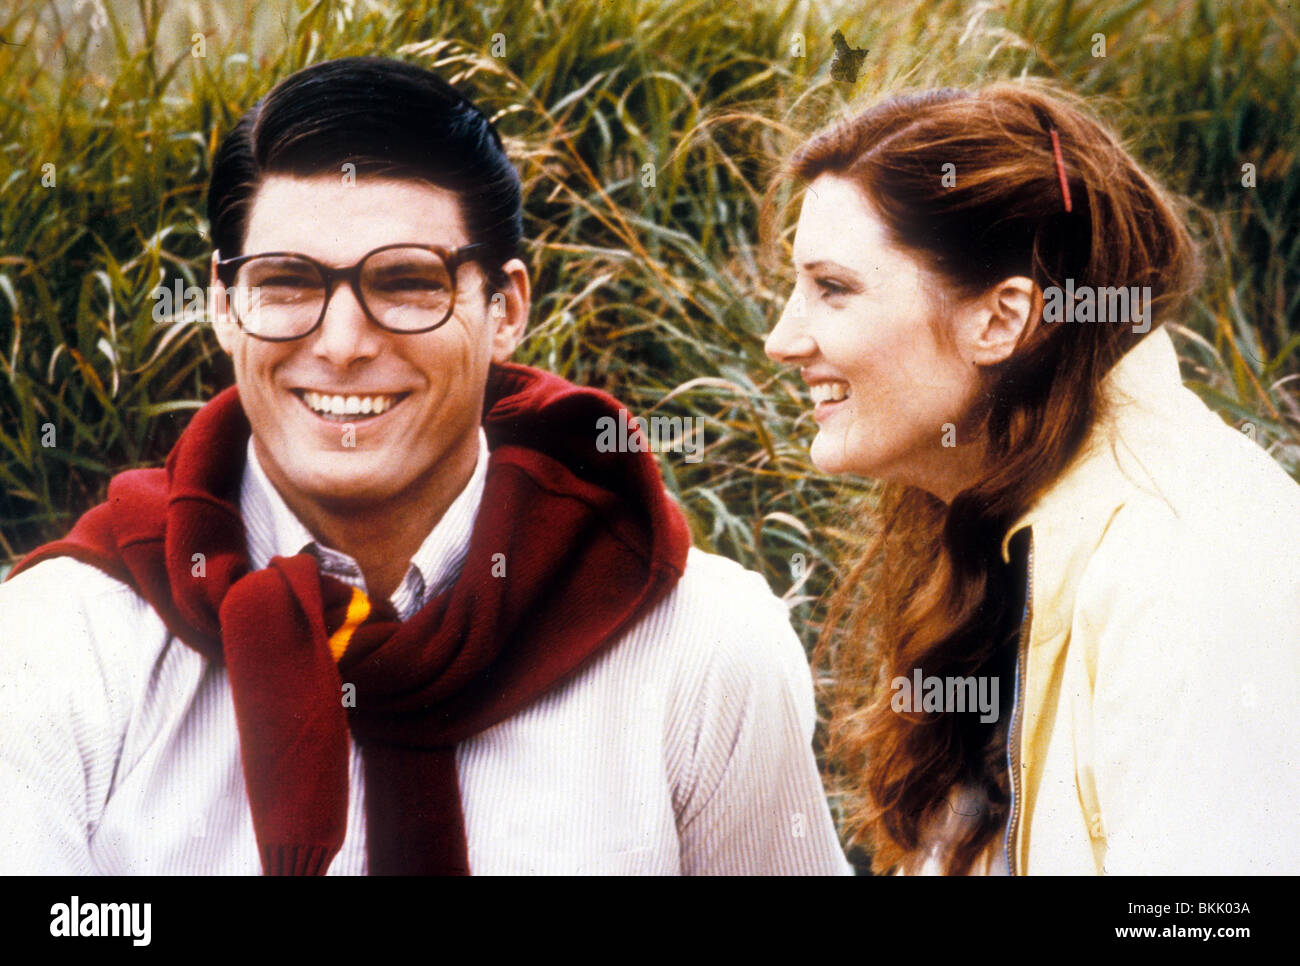 SUPERMAN III (1983) CHRISTOPHER REEVE, ANNETTE O'TOOLE SP3 056 Stock Photo